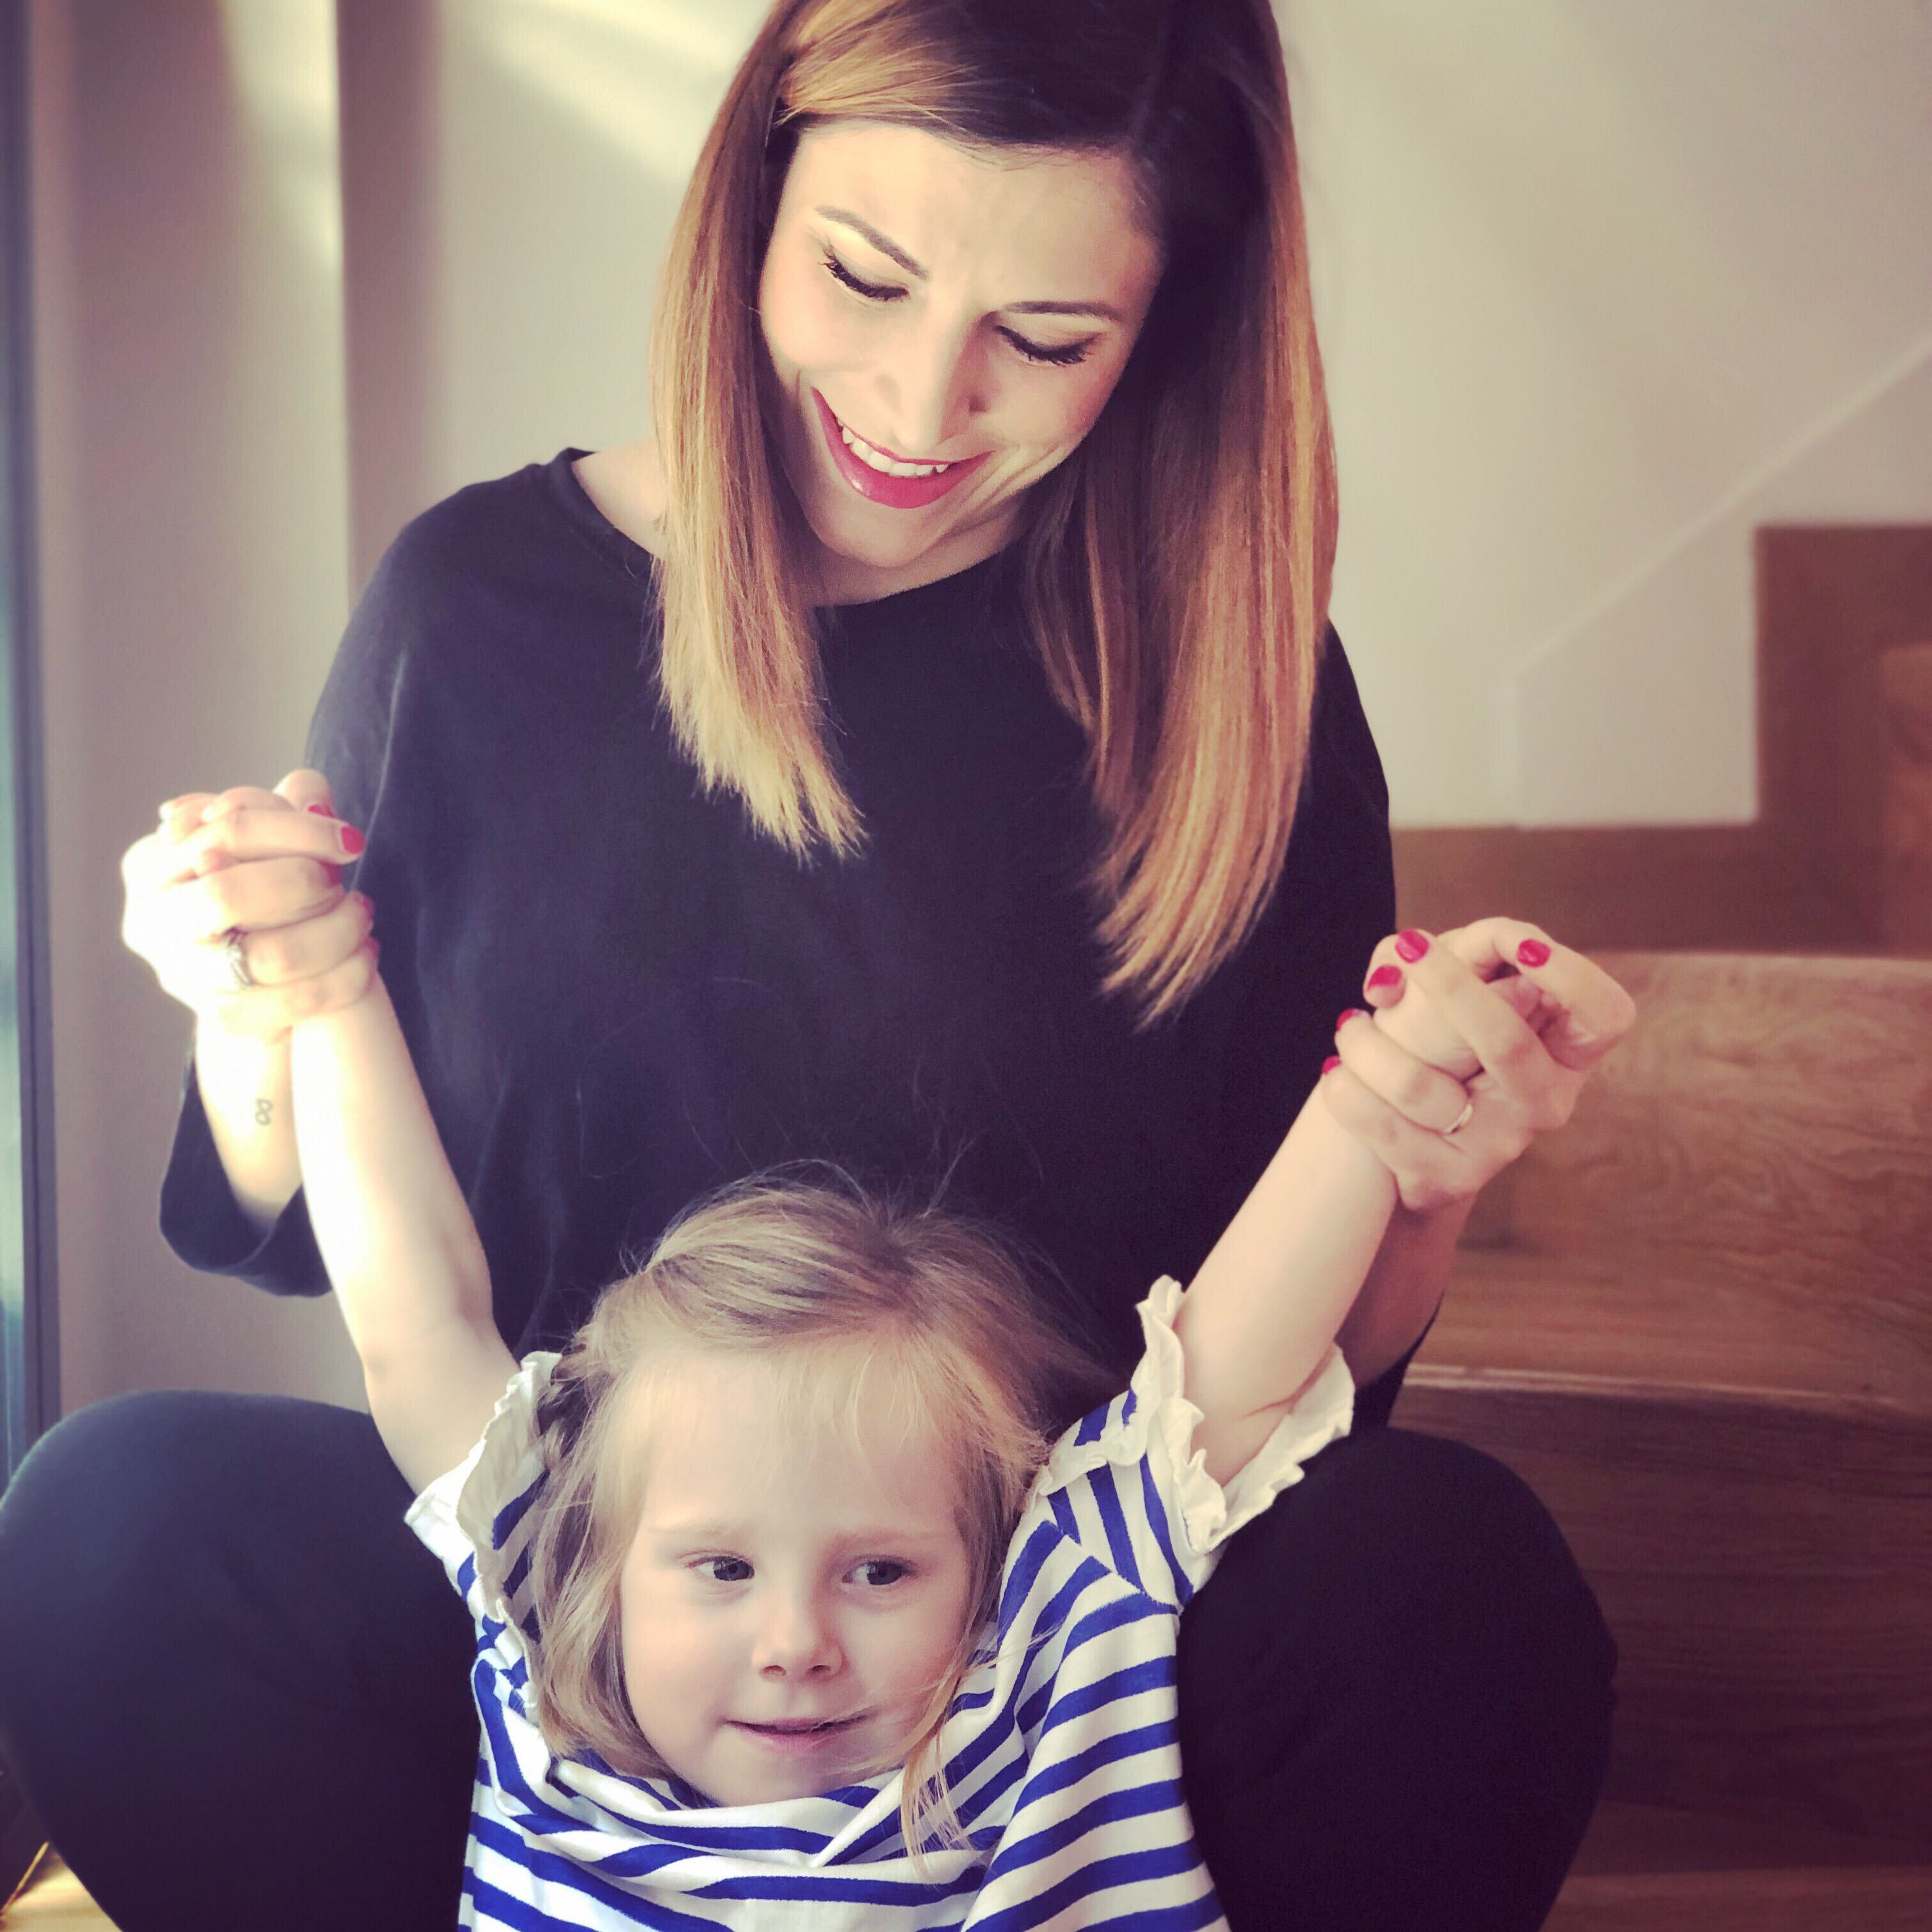 A woman with medium long light brown hair wearing all black  is smiling down at her 4 year old daughter and holding her arms up. The girl has is smiling and looking to the side. She is wearing a blue and white striped shirt.